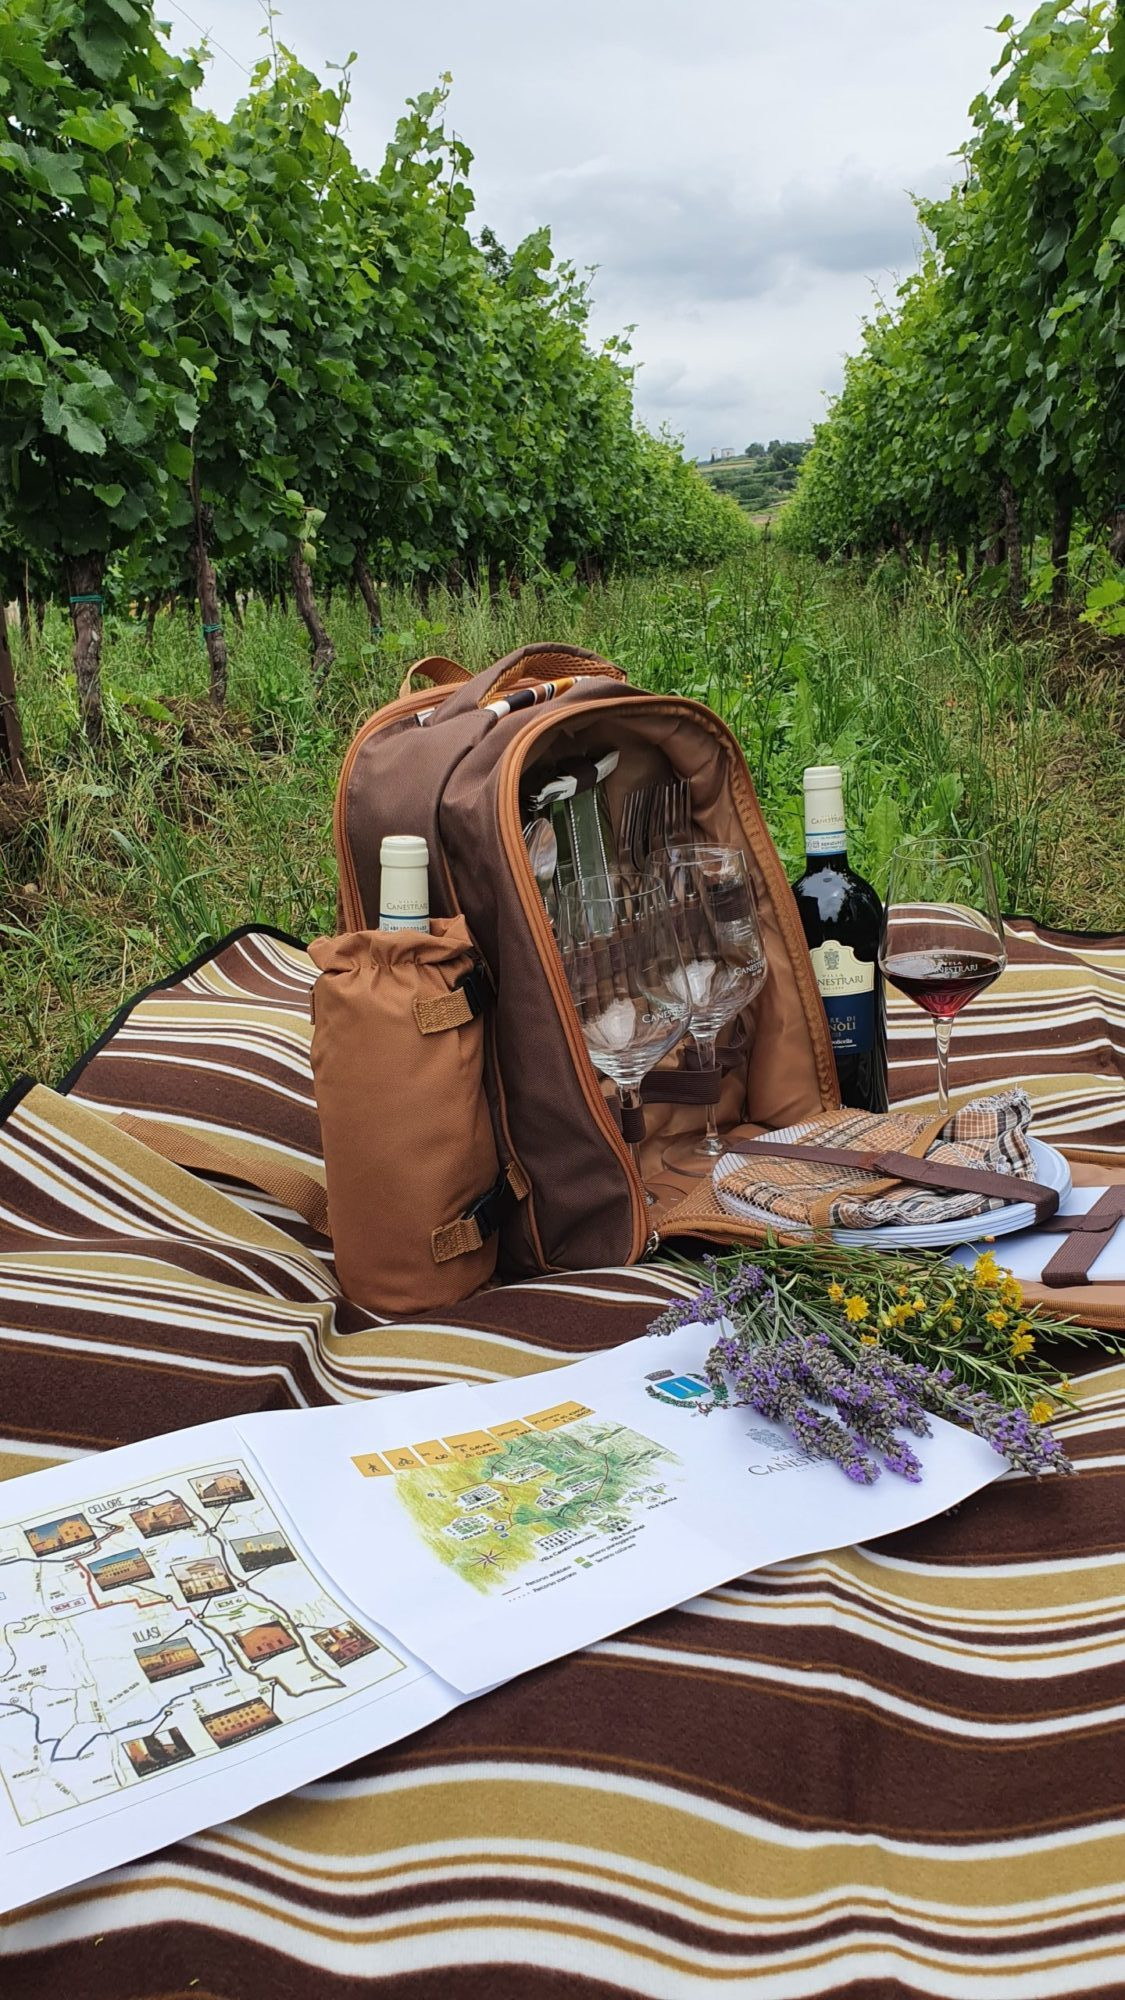 Trekking & Picnic in Vigna – Estate 2020